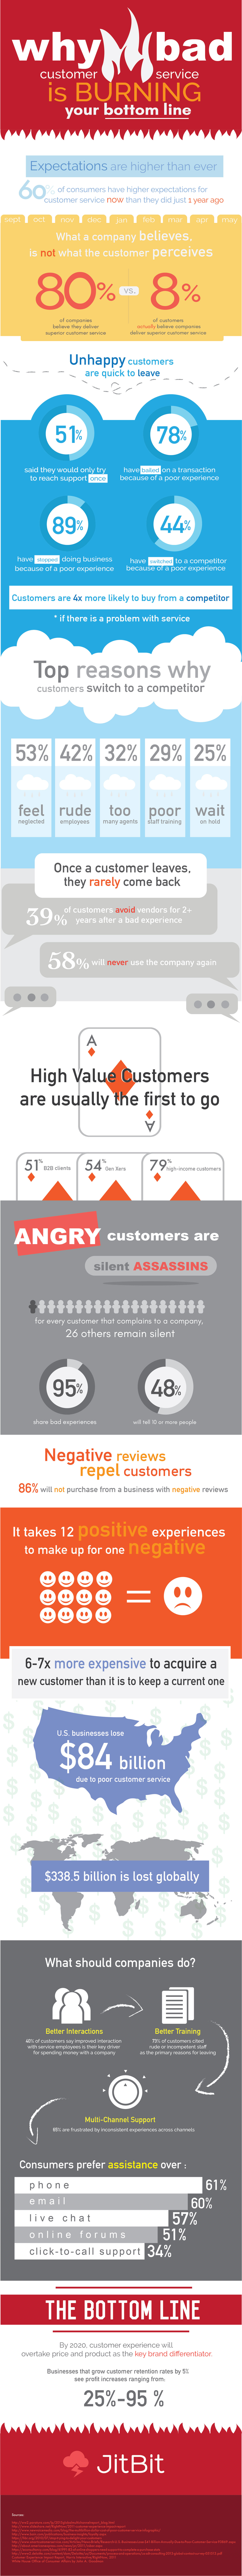 JitBit customer service infographic.jpeg